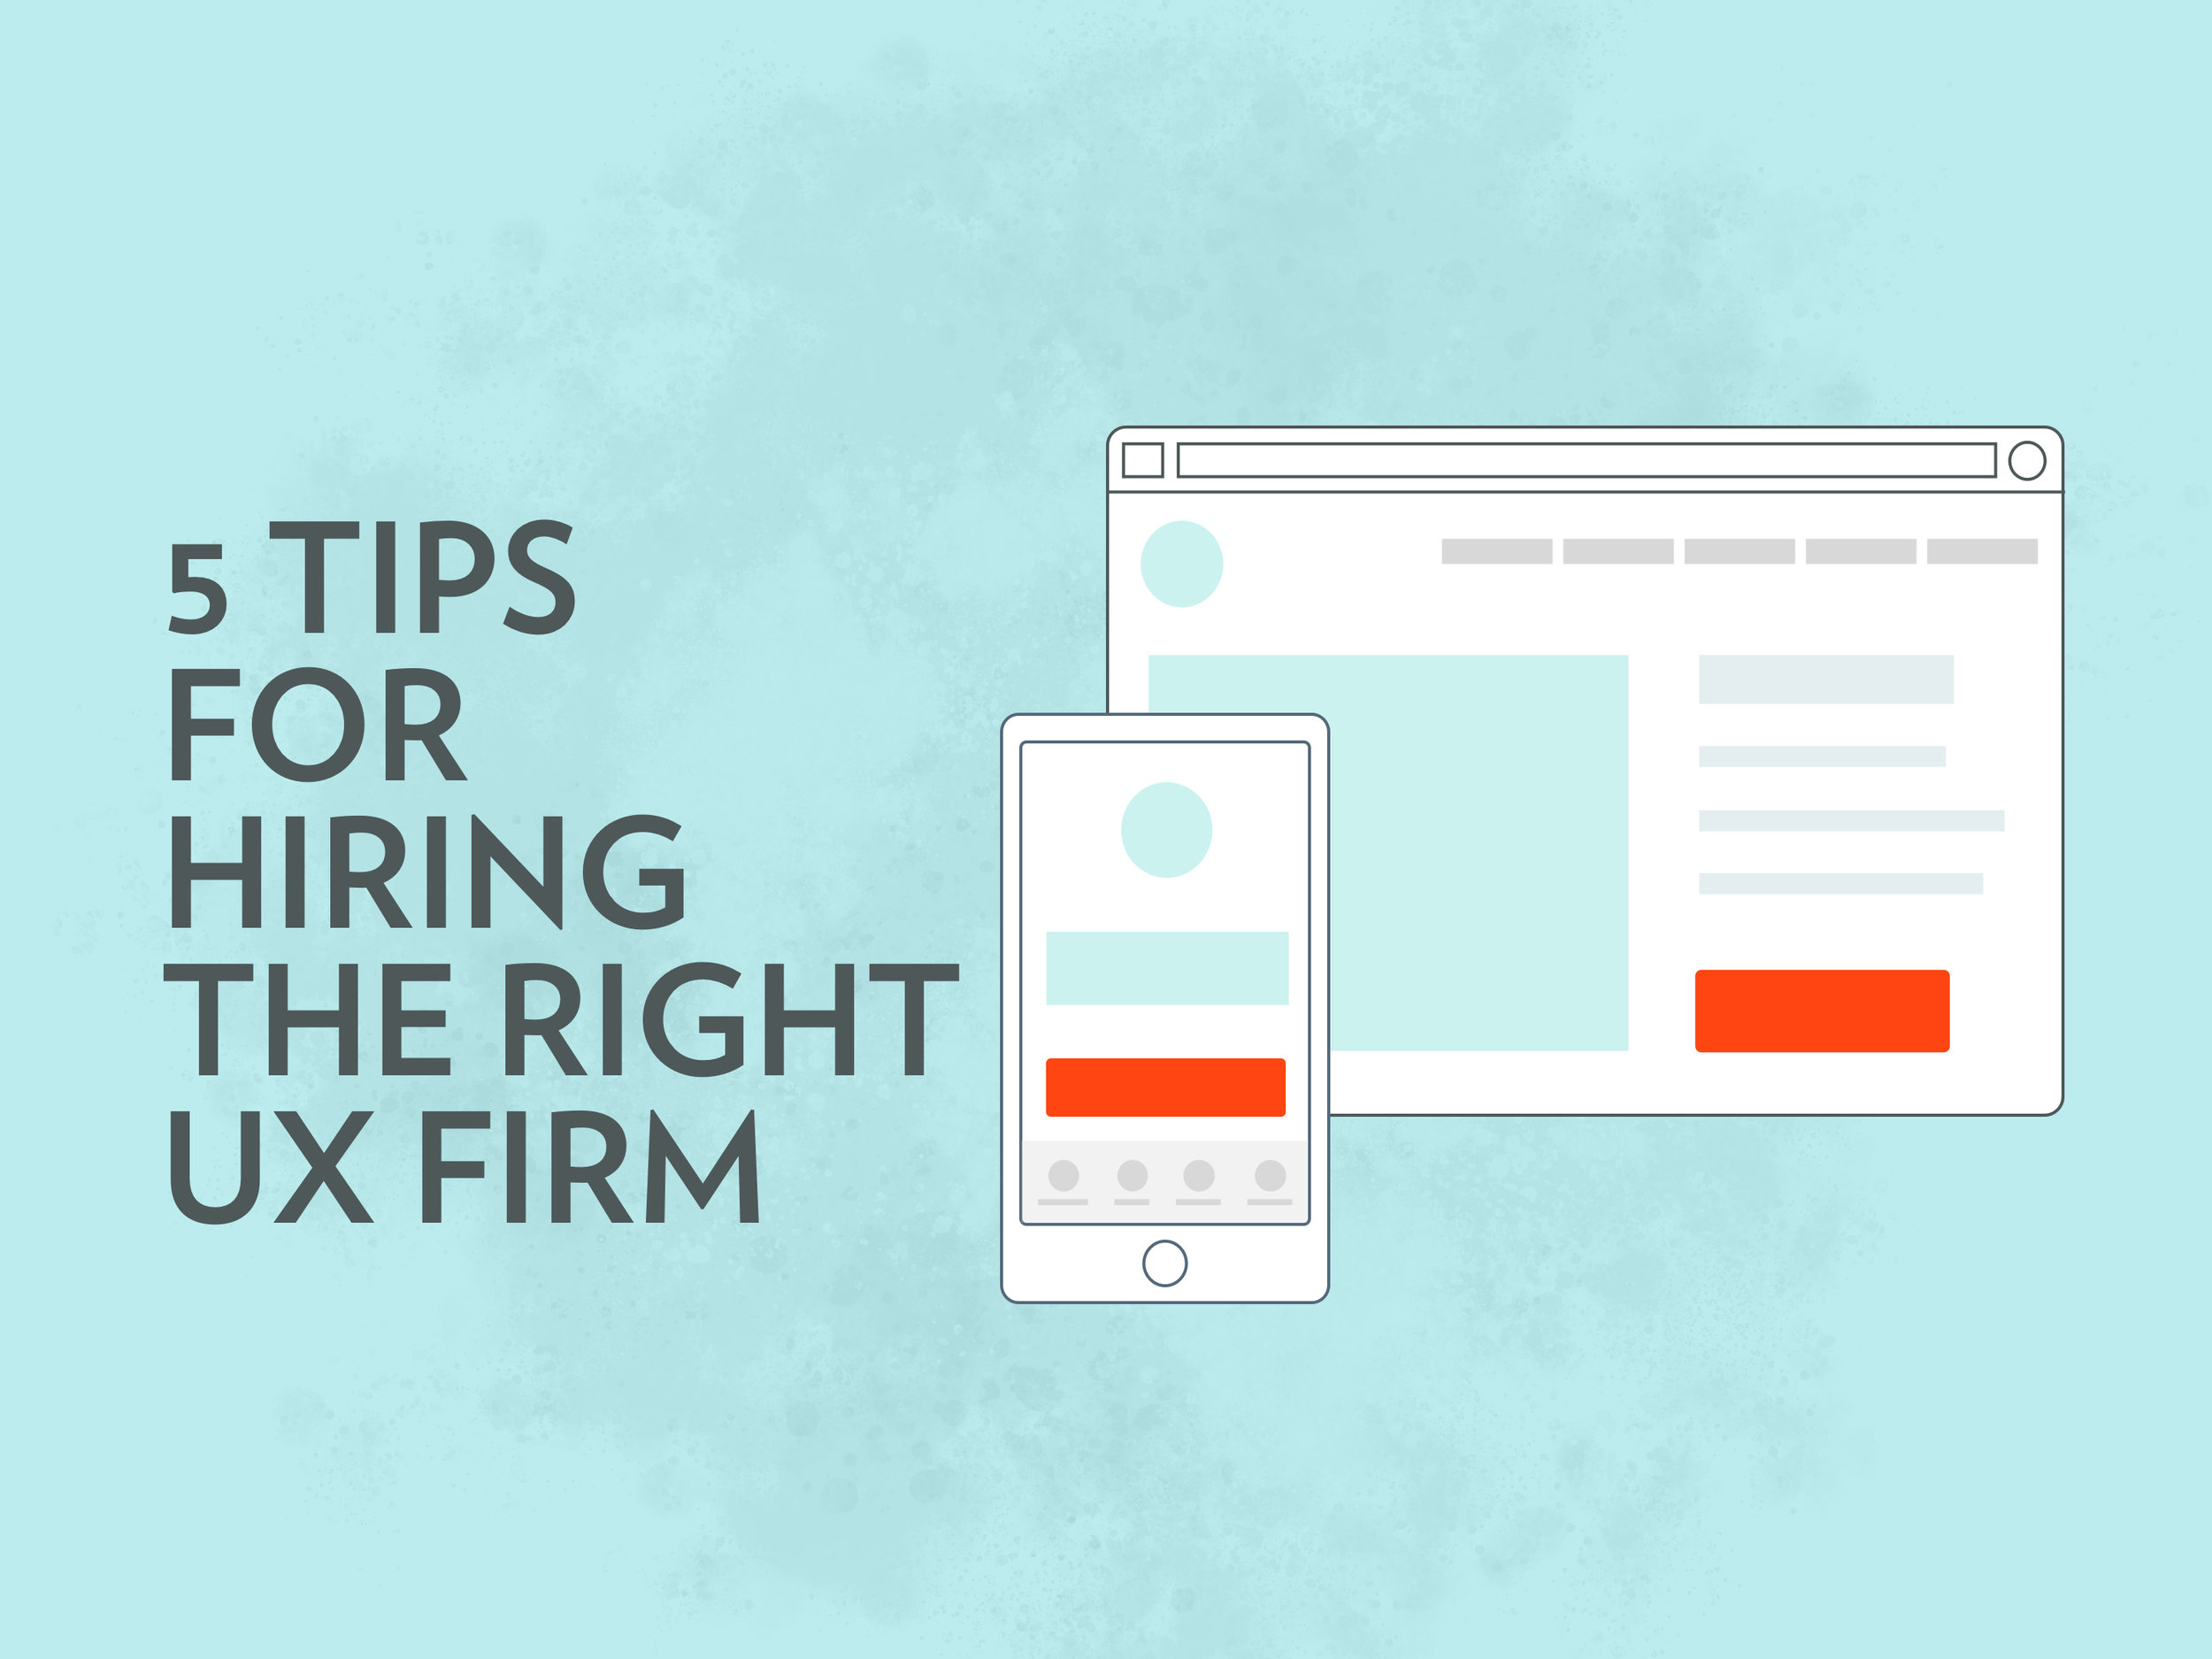 5-tips-for-hiring-right-ux-firm.jpg